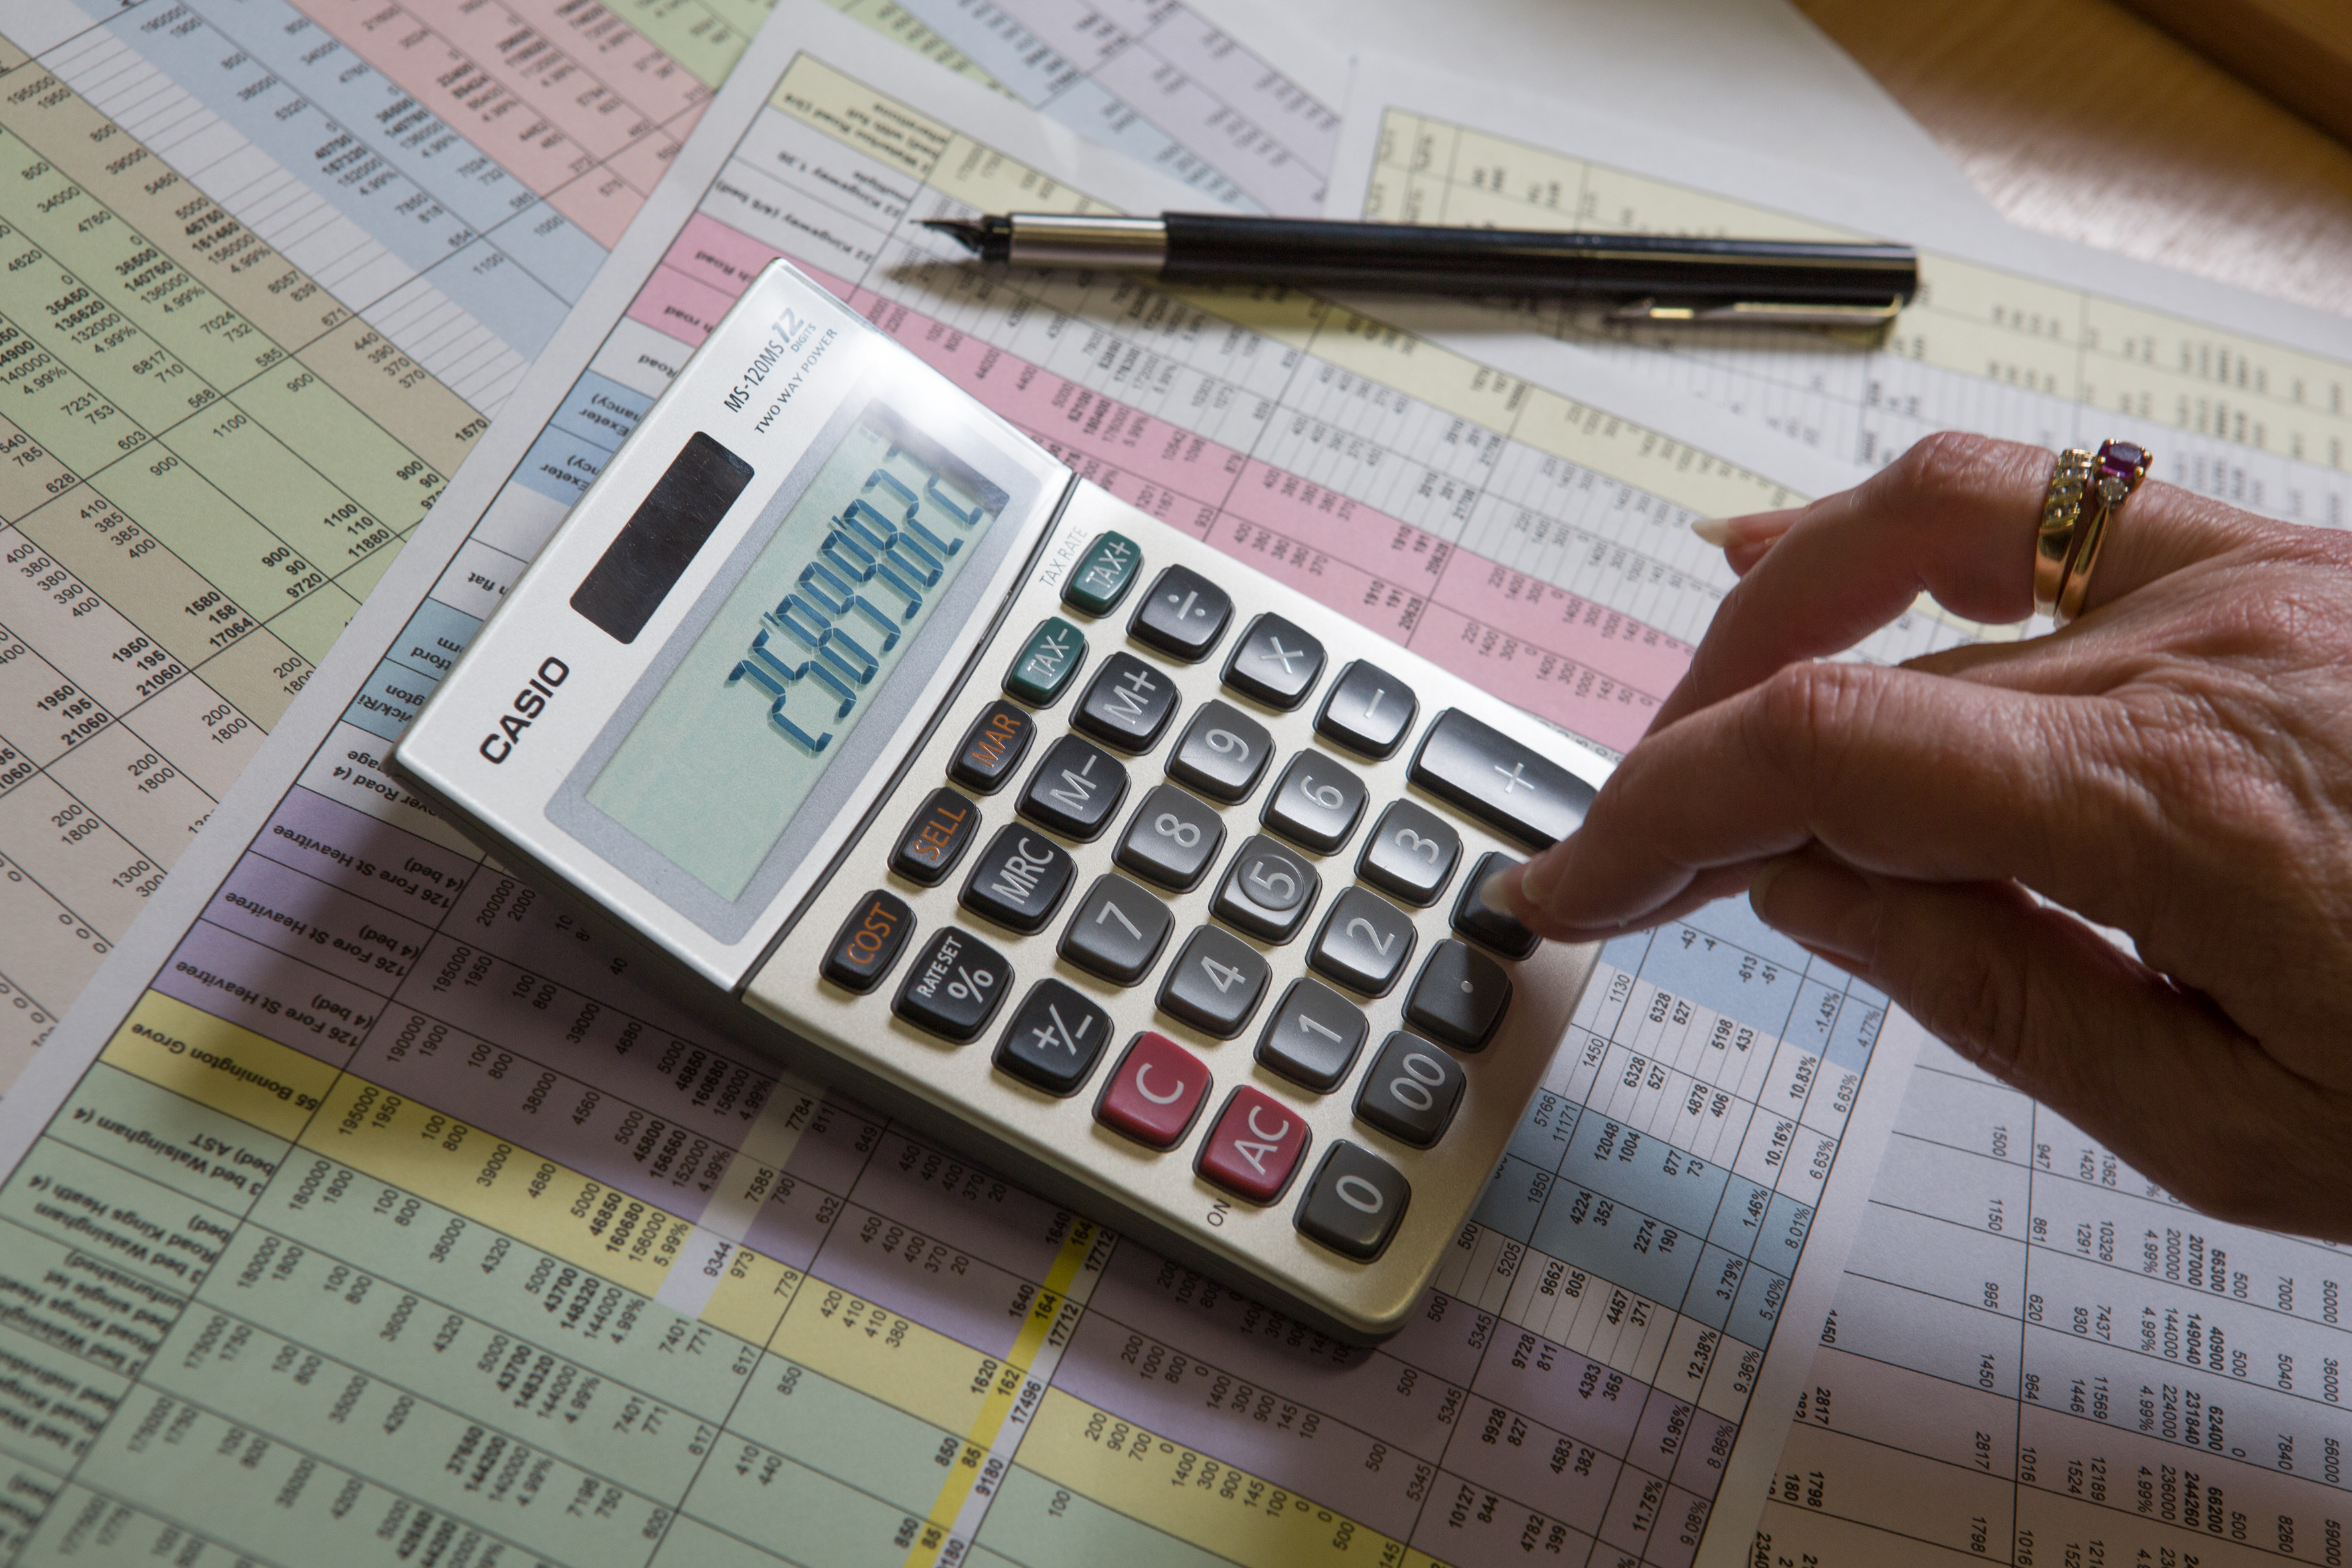 Student using a calculator.